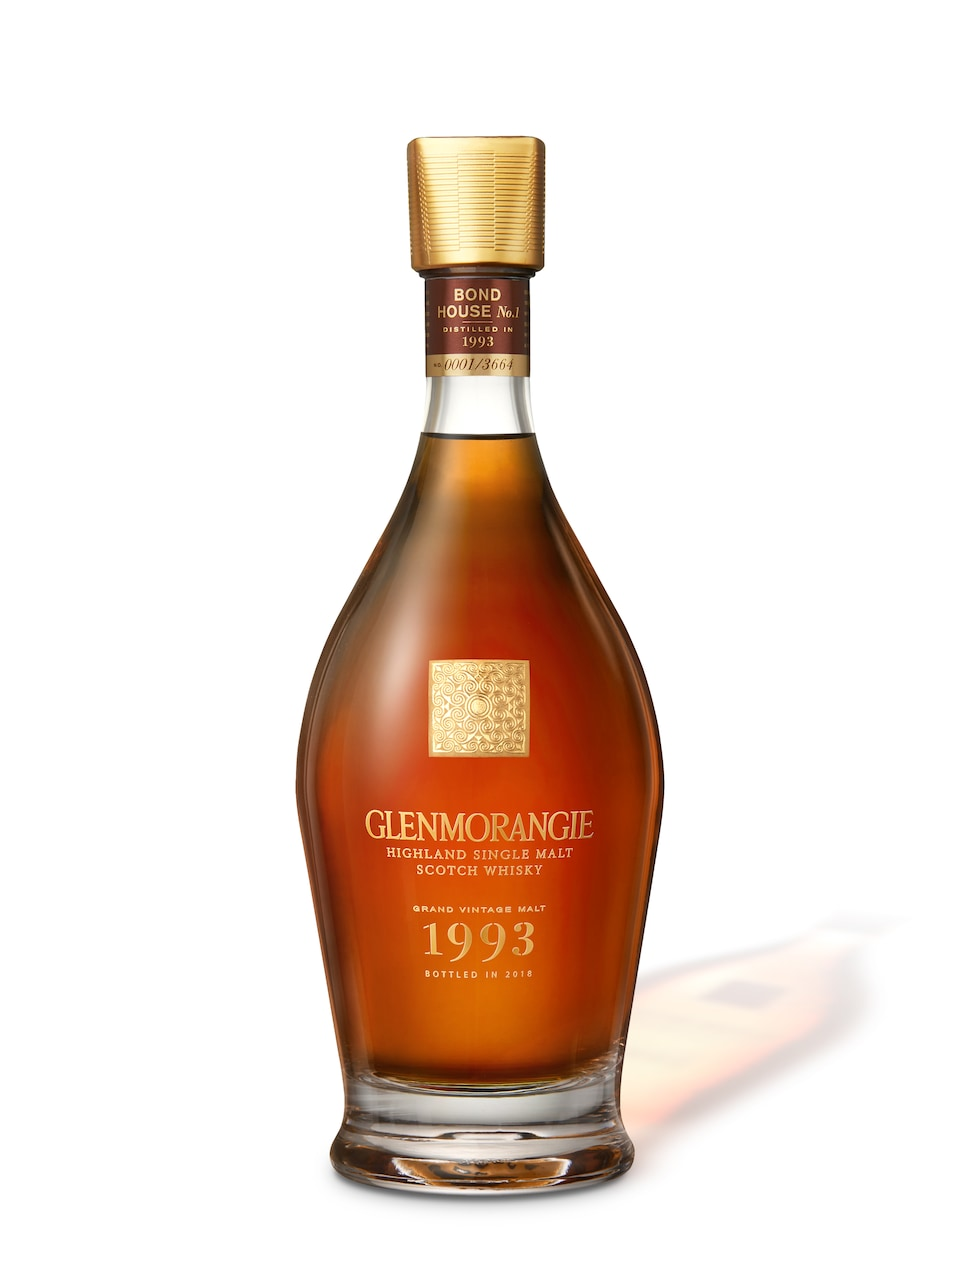 01_Bottle image_Grand vintage malt 1993